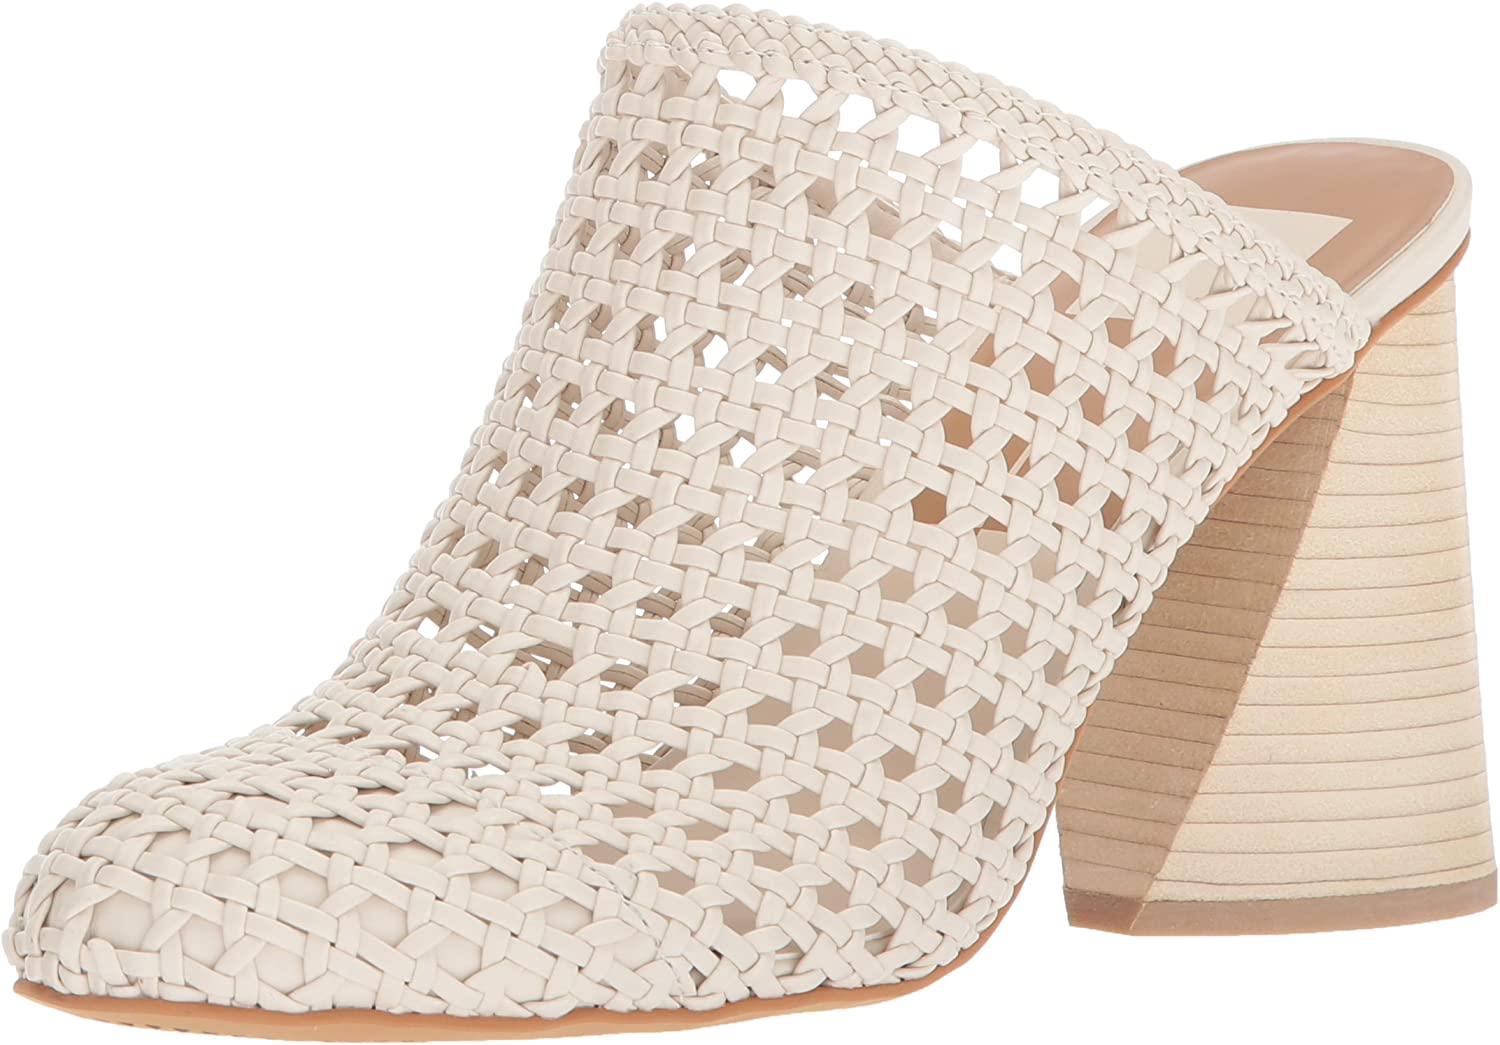 Dolce Vita Womens Ginny Leather Woven Casual Mules Shoes BHFO 6410